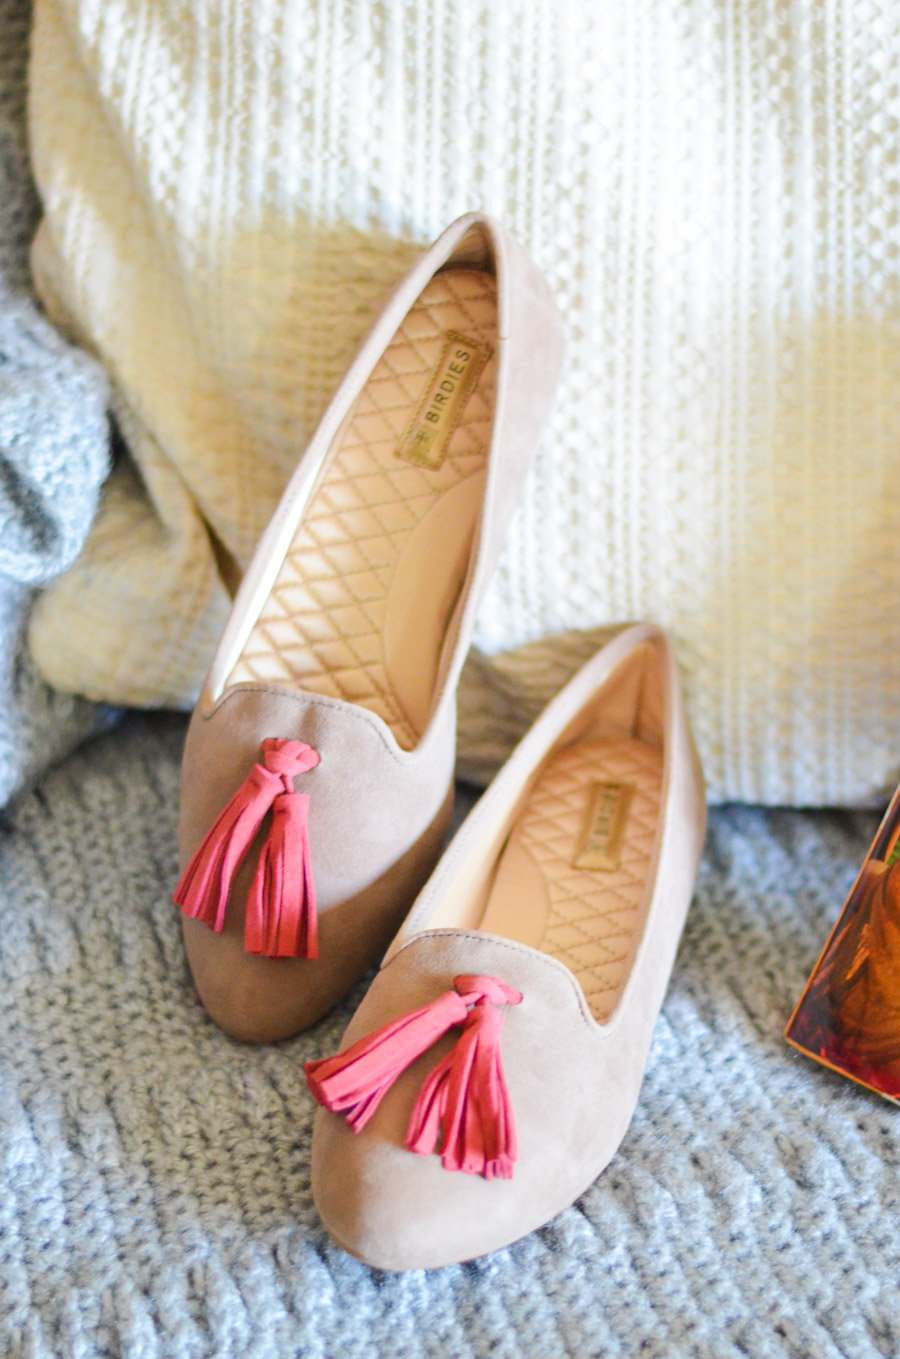 Fashionable House Slippers for Women - Birdies Slippers